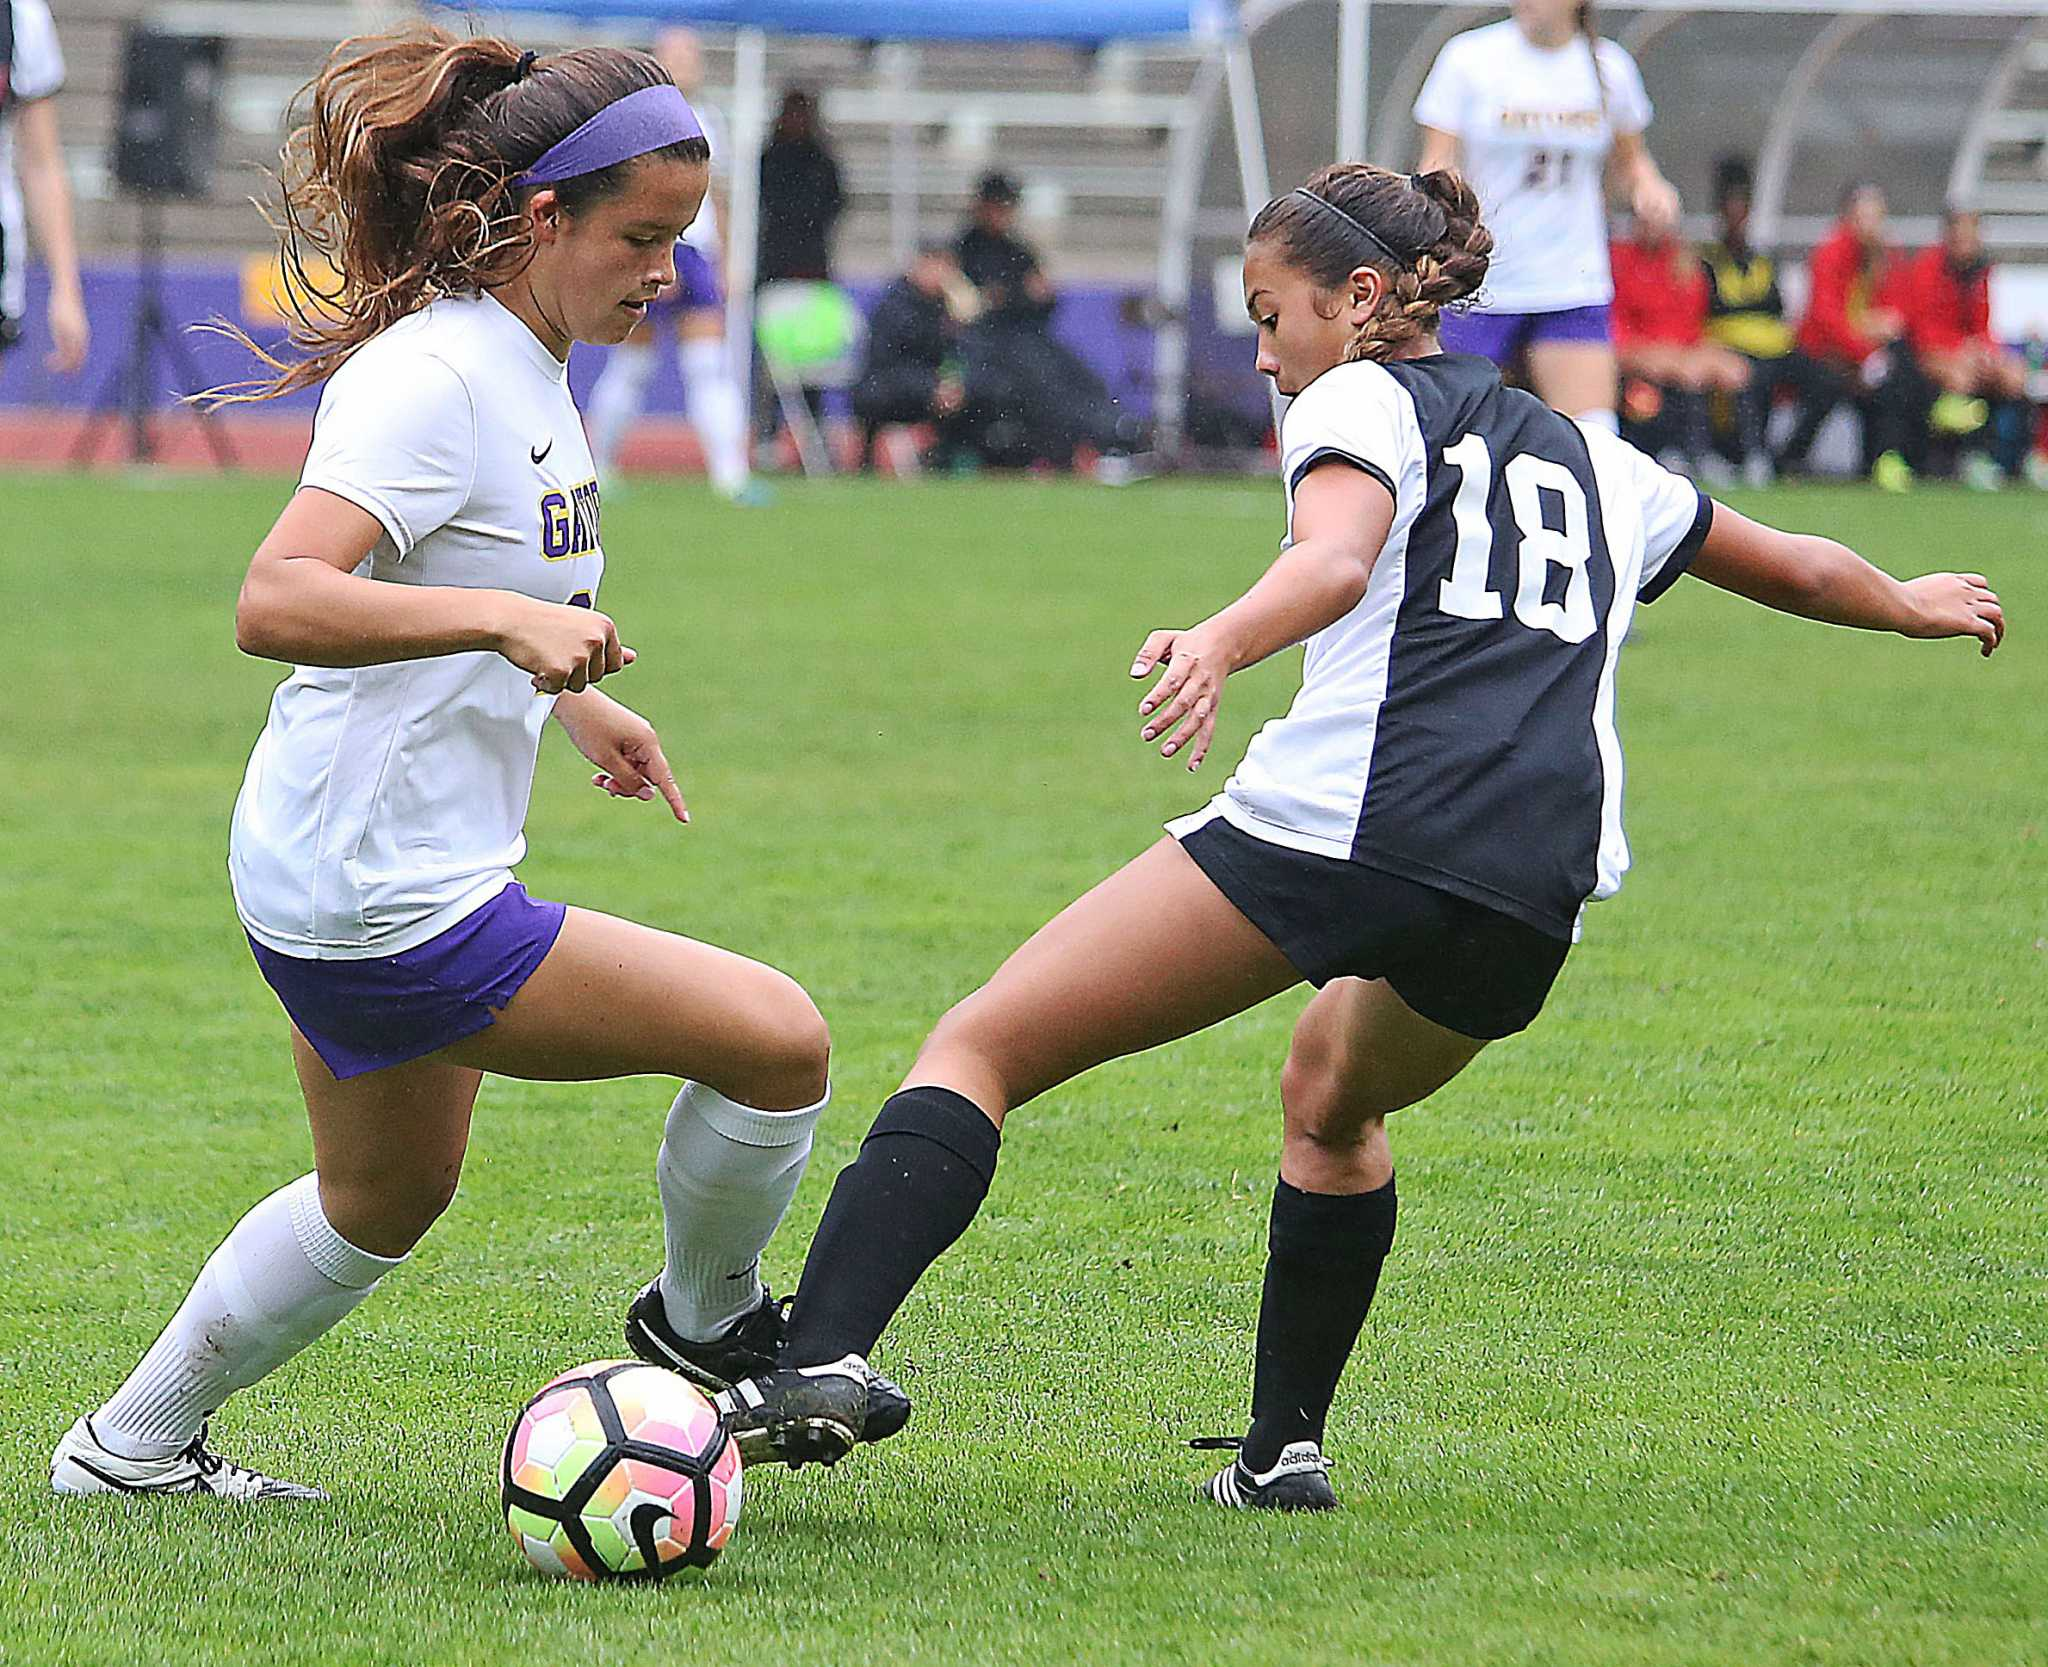 SF State Gators' freshman defender Kelsey Wetzstein (24) battles for control of the ball during their 2-1 loss to the Cal State East Bay Pioneers at Cox Stadium on Thursday, Oct. 27, 2016.